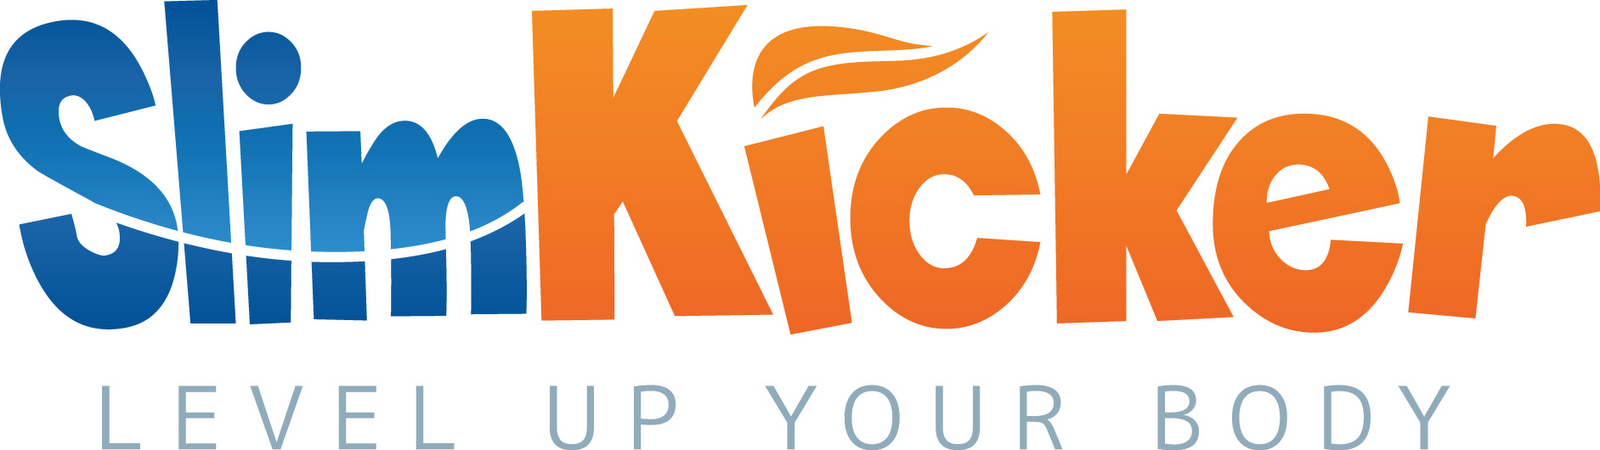 Giveaway: Digital Kitchen Scale and Slimkicker App Review - Kitchen